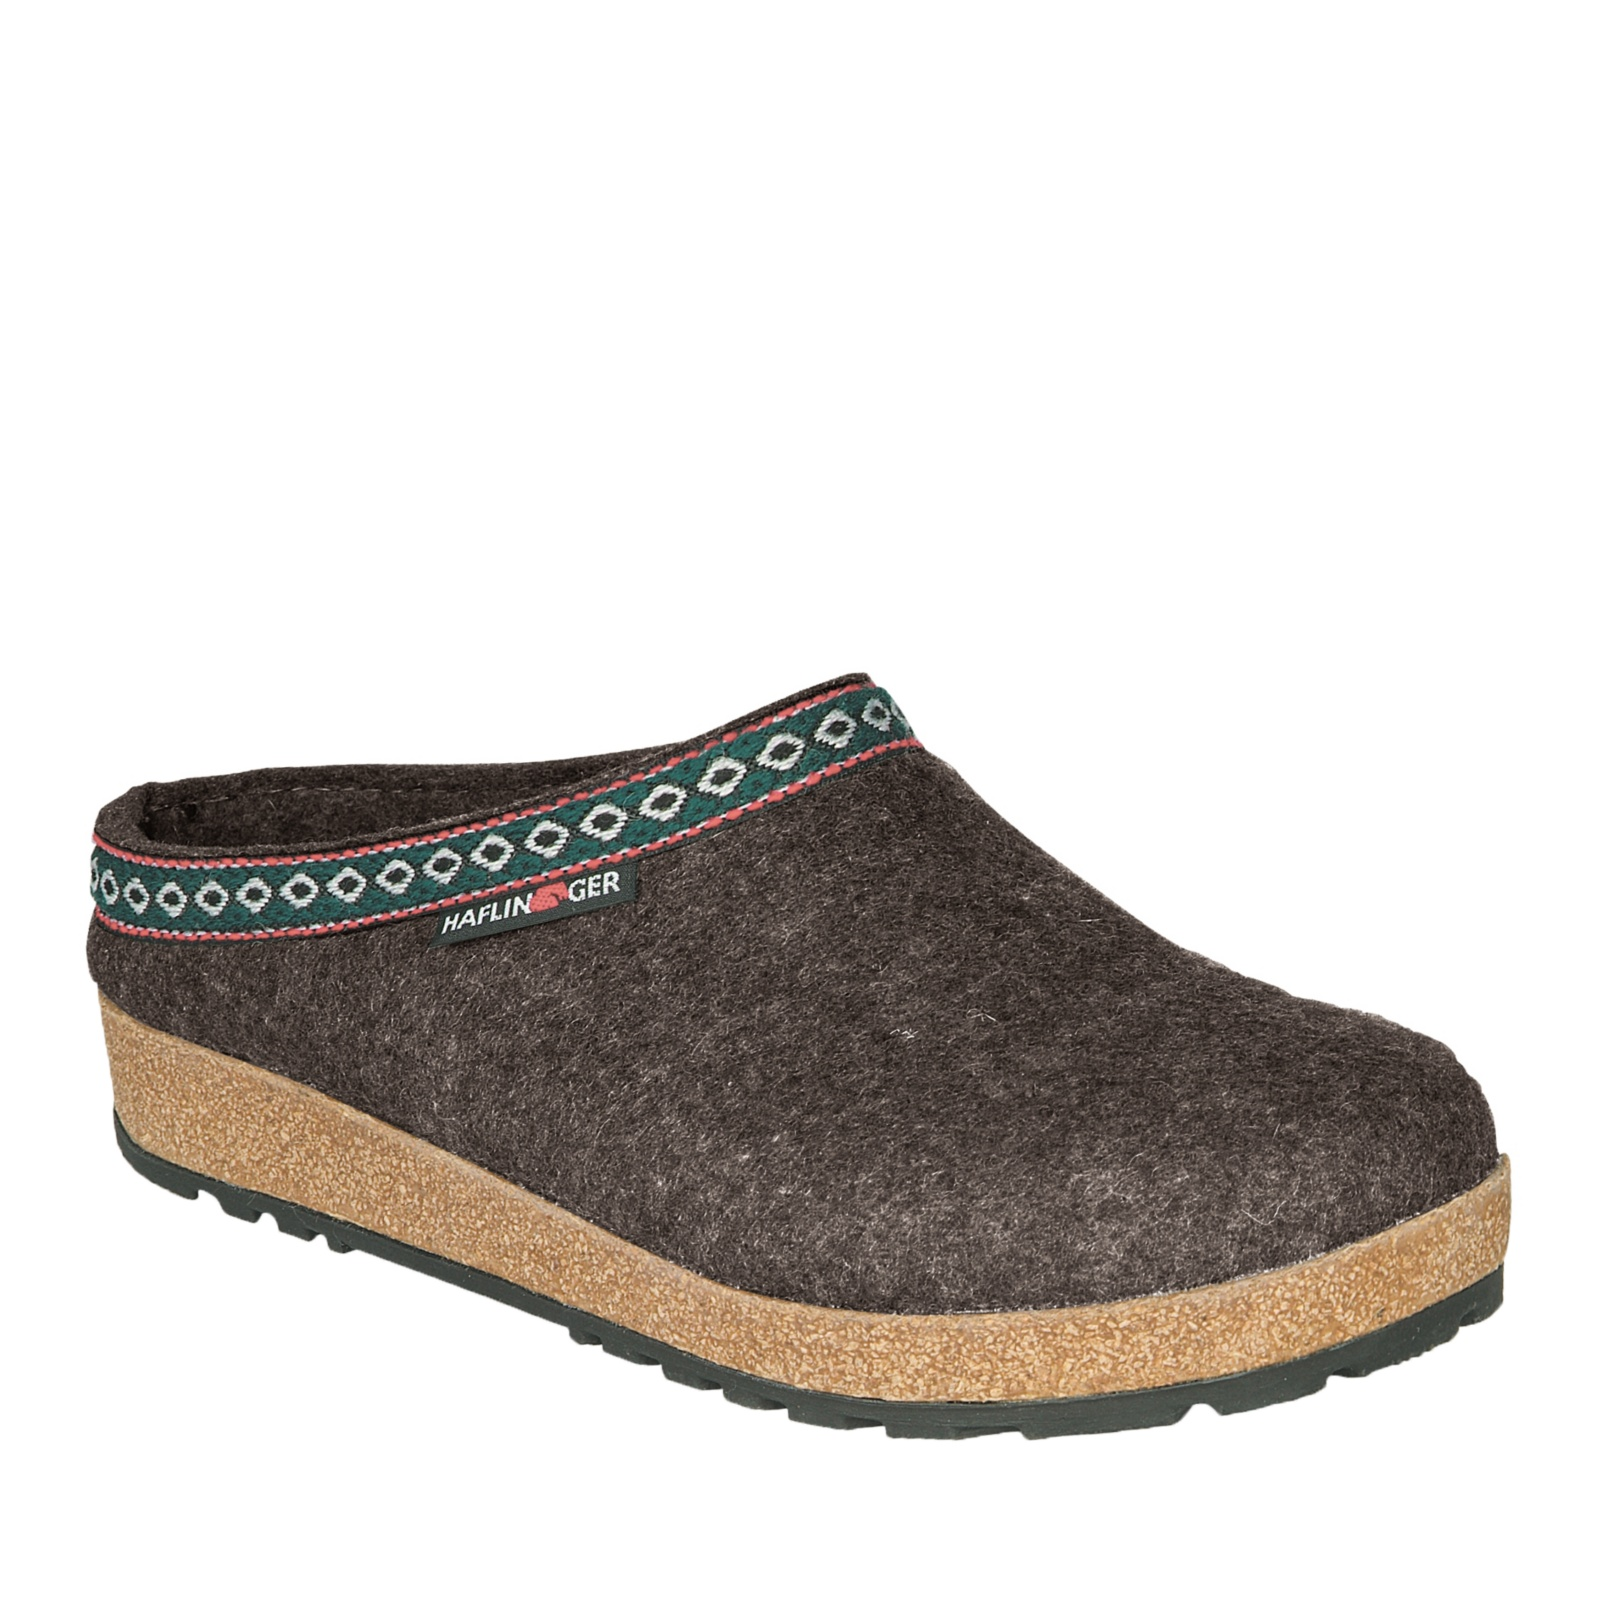 Boiled Wool Slippers Womens Shoes